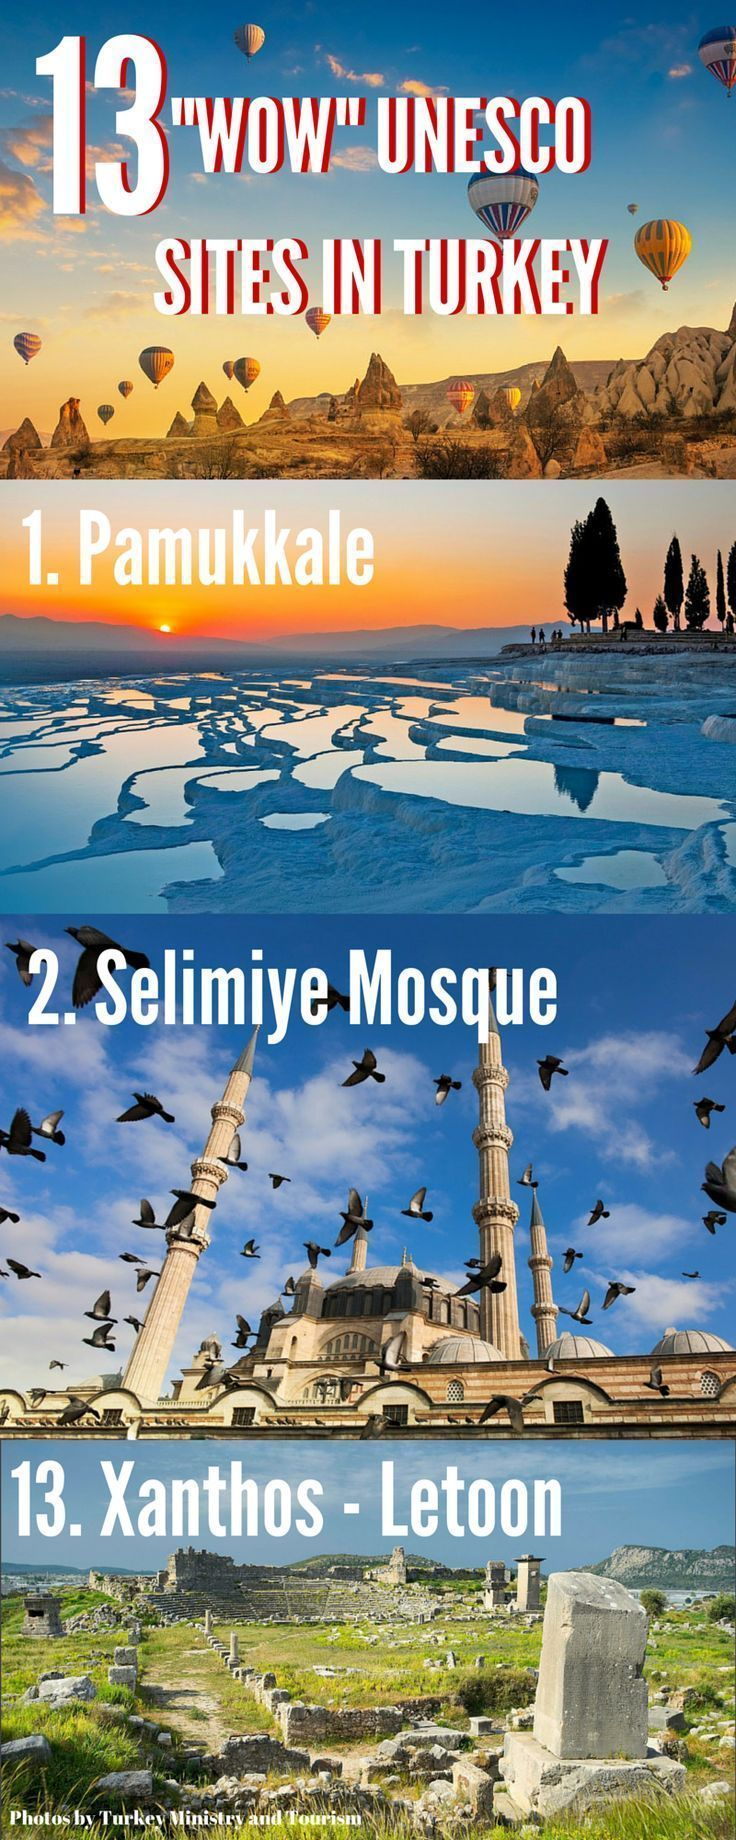 """Check out 13 amazing UNESCO sites in Turkey that will make you go """"Wow."""" For more amazing pictures of Turkey follow @Turkey Home. Make sure you go on your great #TurquoiseHunt this summer."""